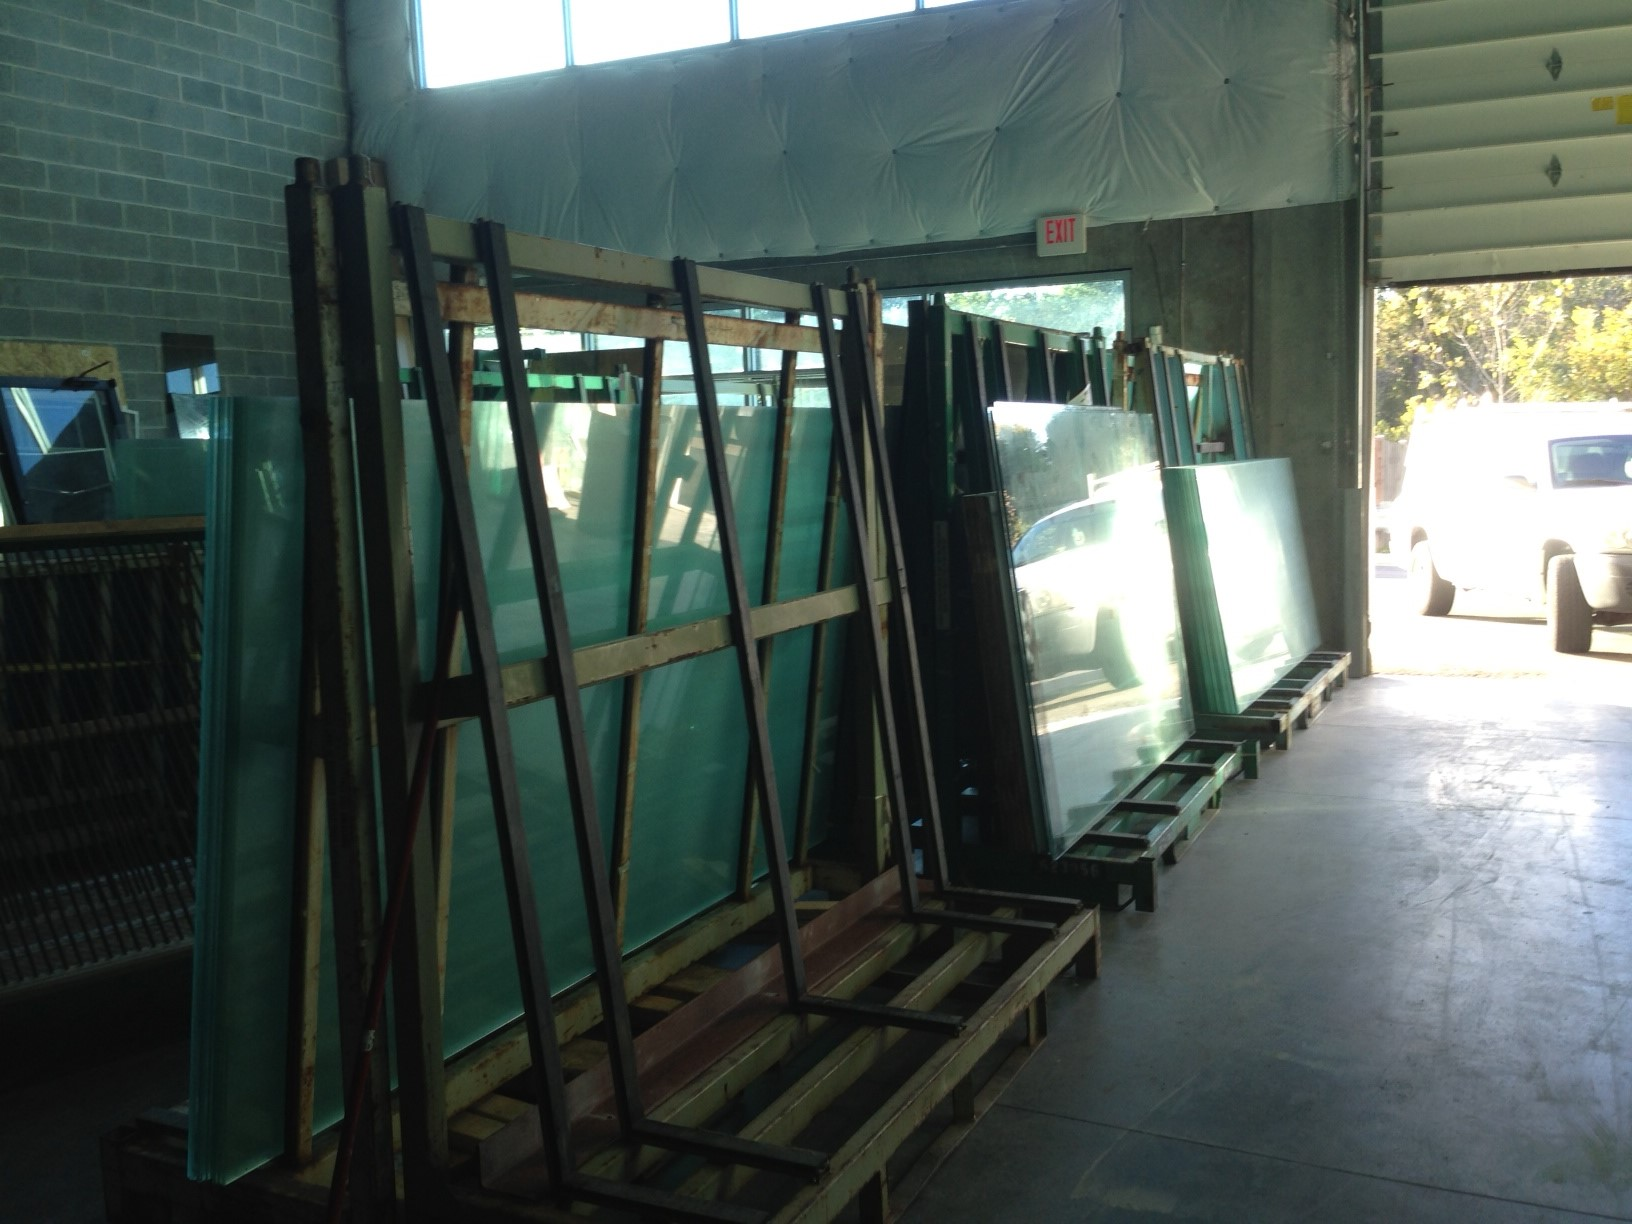 DC emergency window and door glass repair and replacement-About Us3.JPG